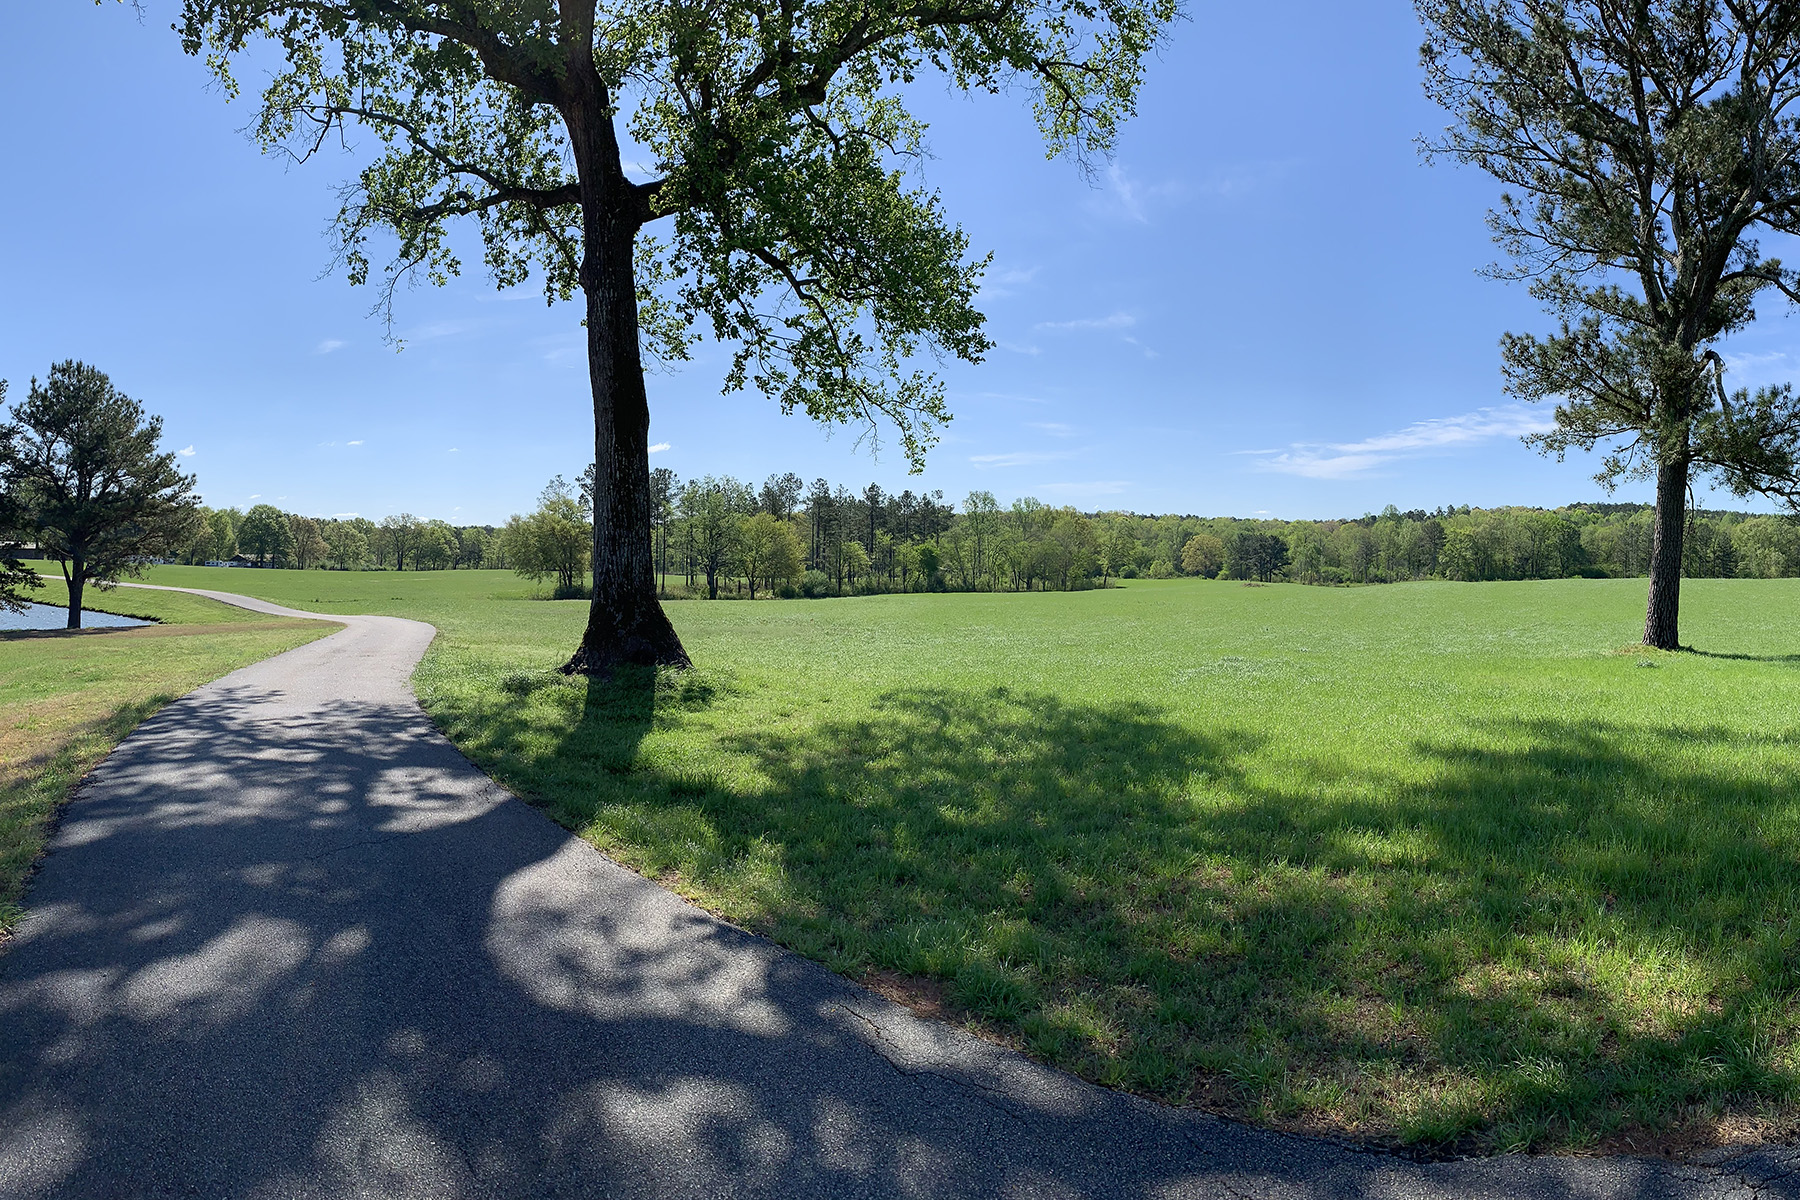 Land for Sale at Breathtaking, Open, Rolling 30 +- Acre Tract Attached to Bear Creek Farm 0 Bear Creek Road Lot 2 Moreland, Georgia 30259 United States